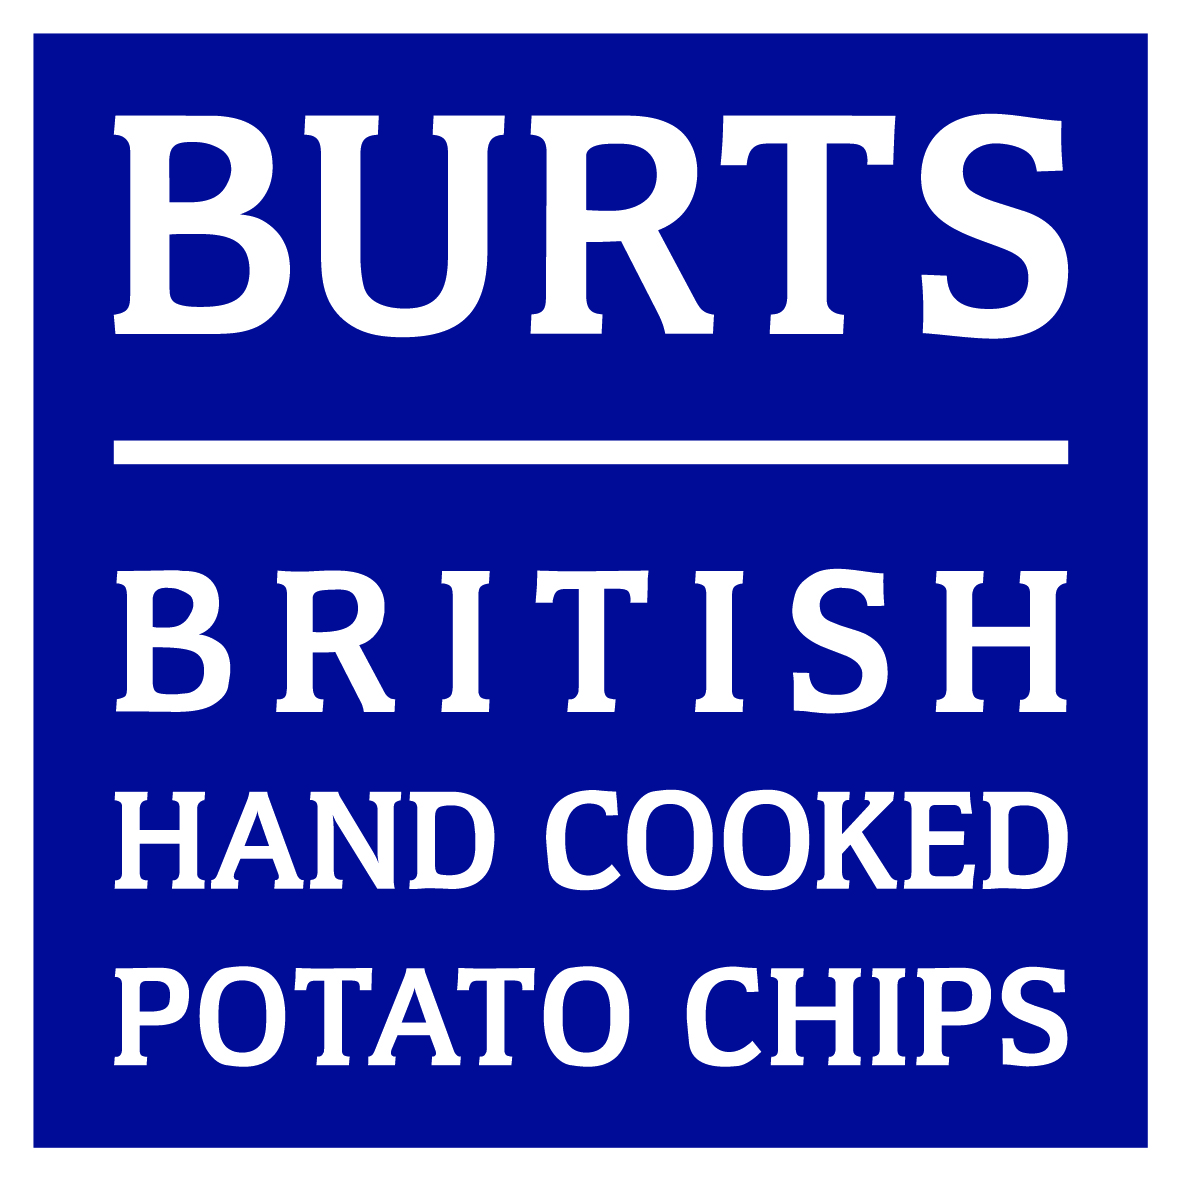 Burts Potato Chips Blue Logo 2015.jpg